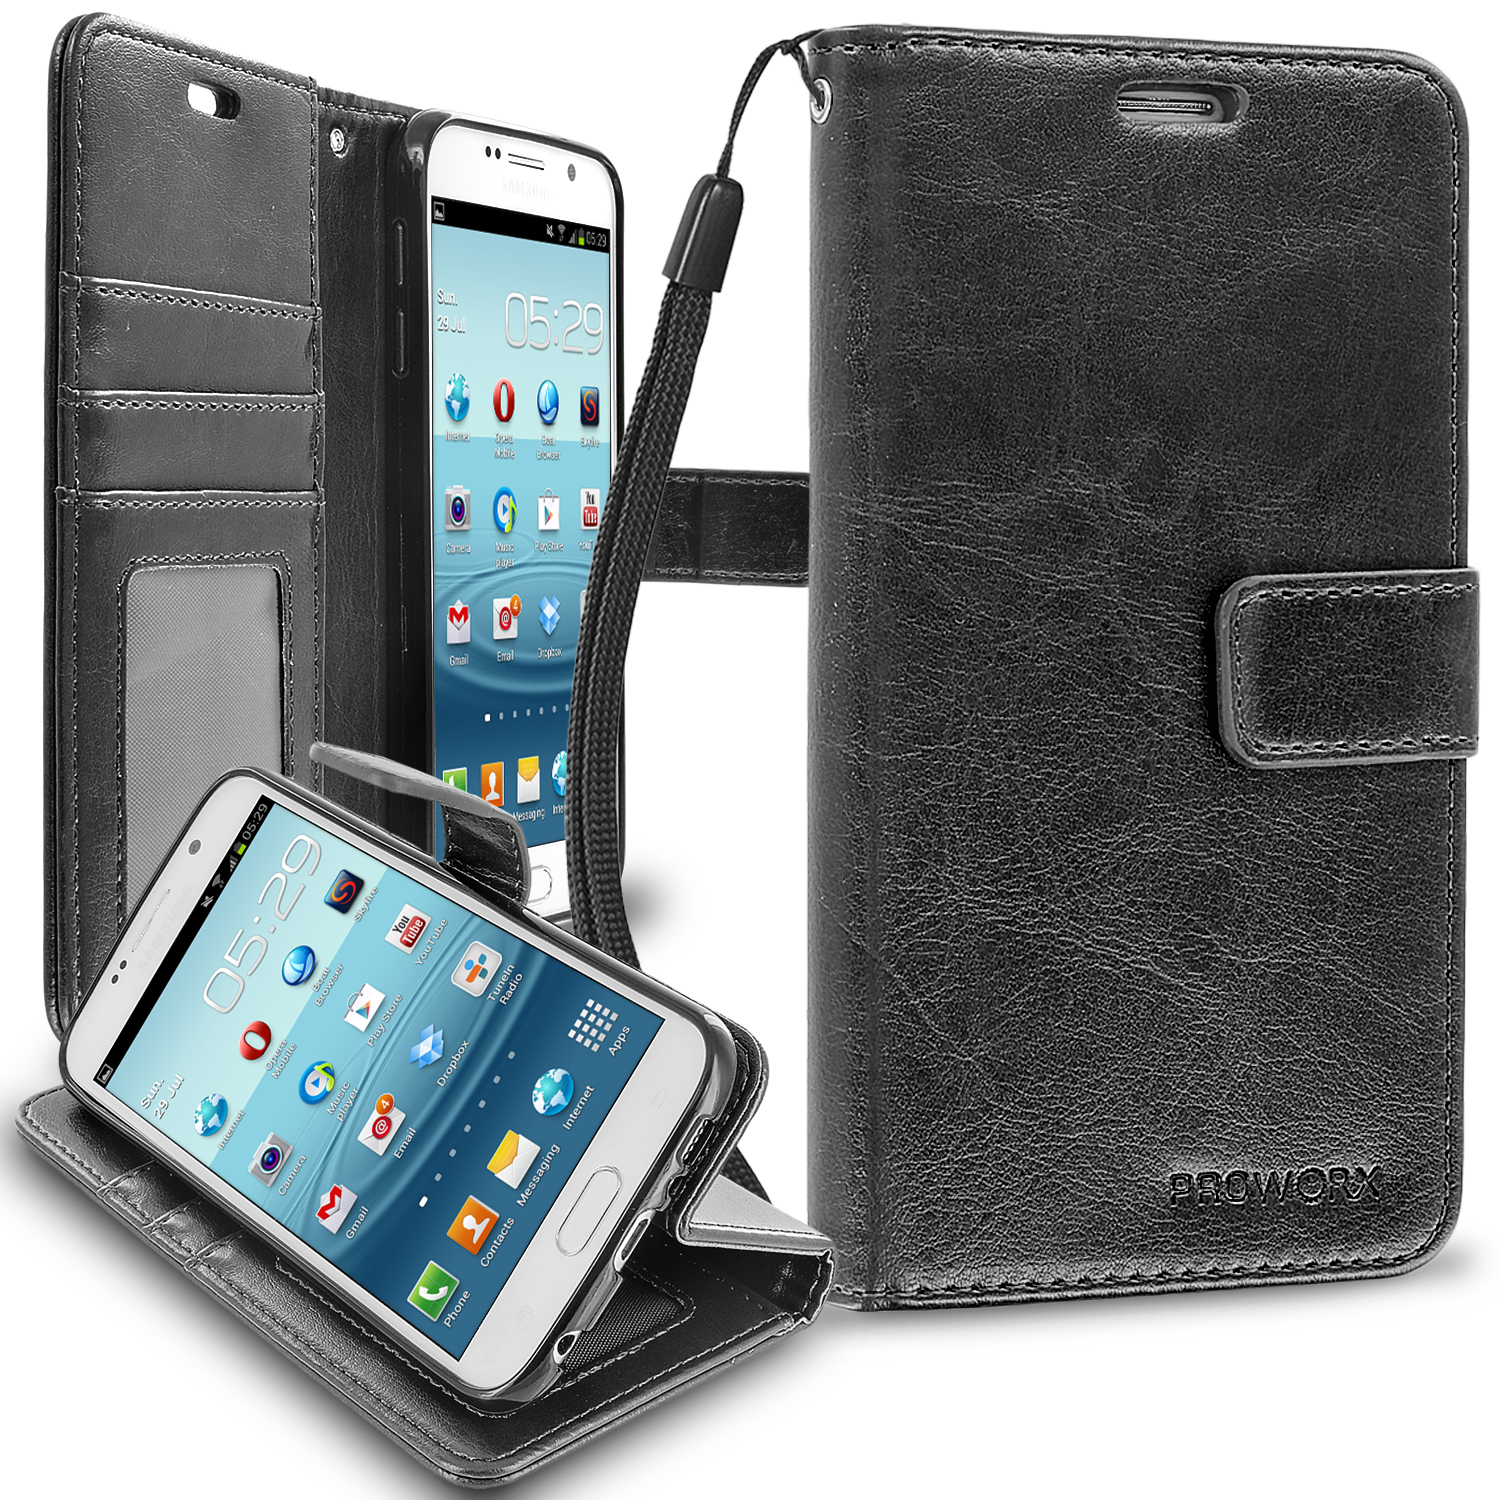 Samsung Galaxy S6 Black ProWorx Wallet Case Luxury PU Leather Case Cover With Card Slots & Stand